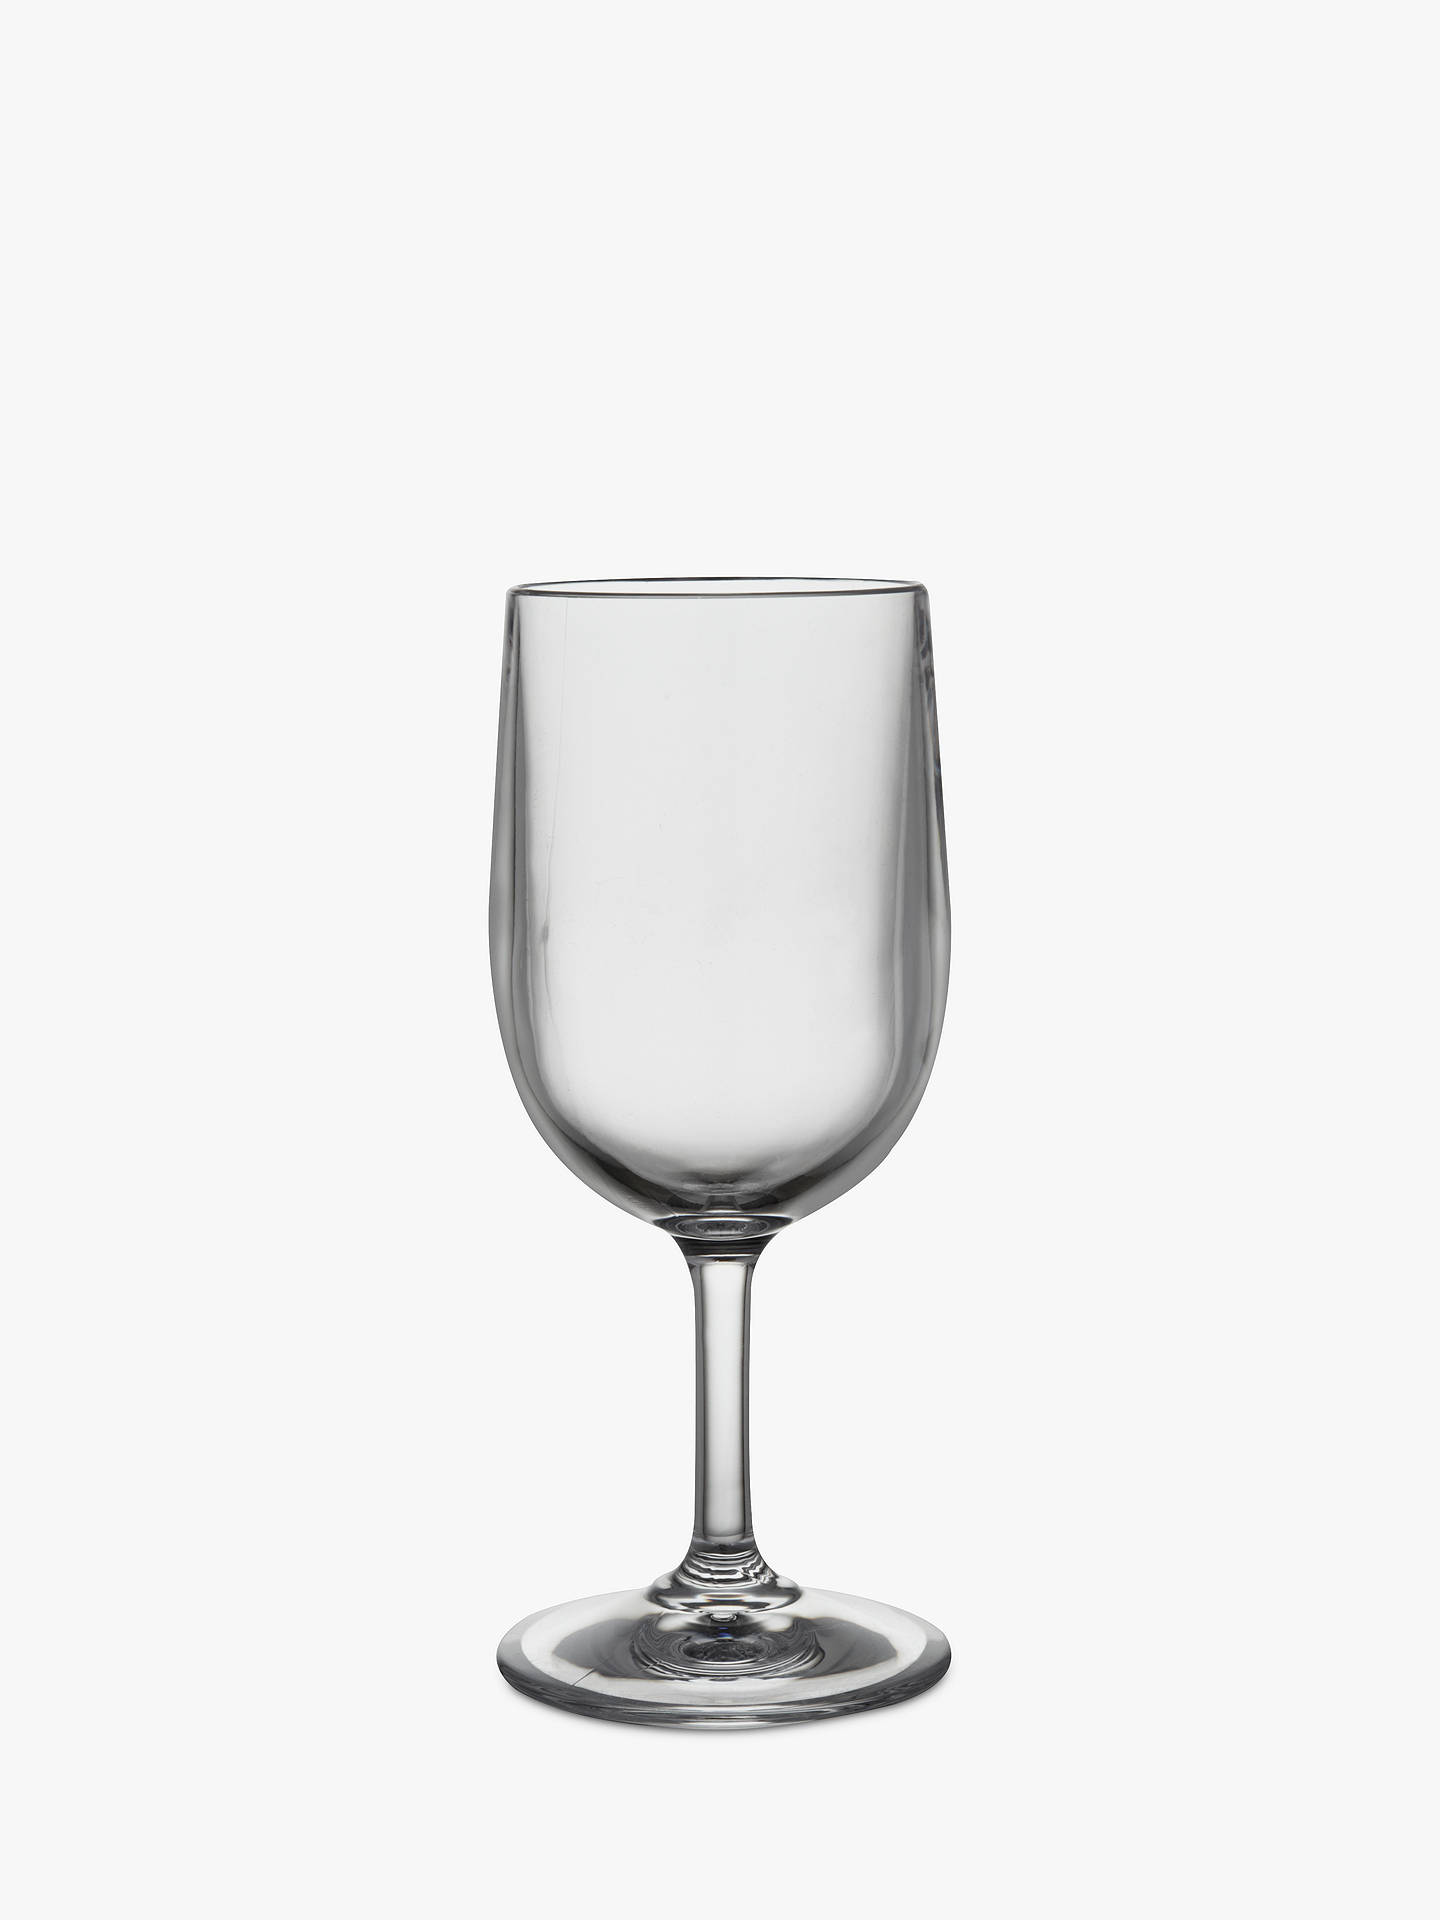 BuyStrahl Vivaldi Small Polycarbonate Picnic Wine Glass Online at johnlewis.com